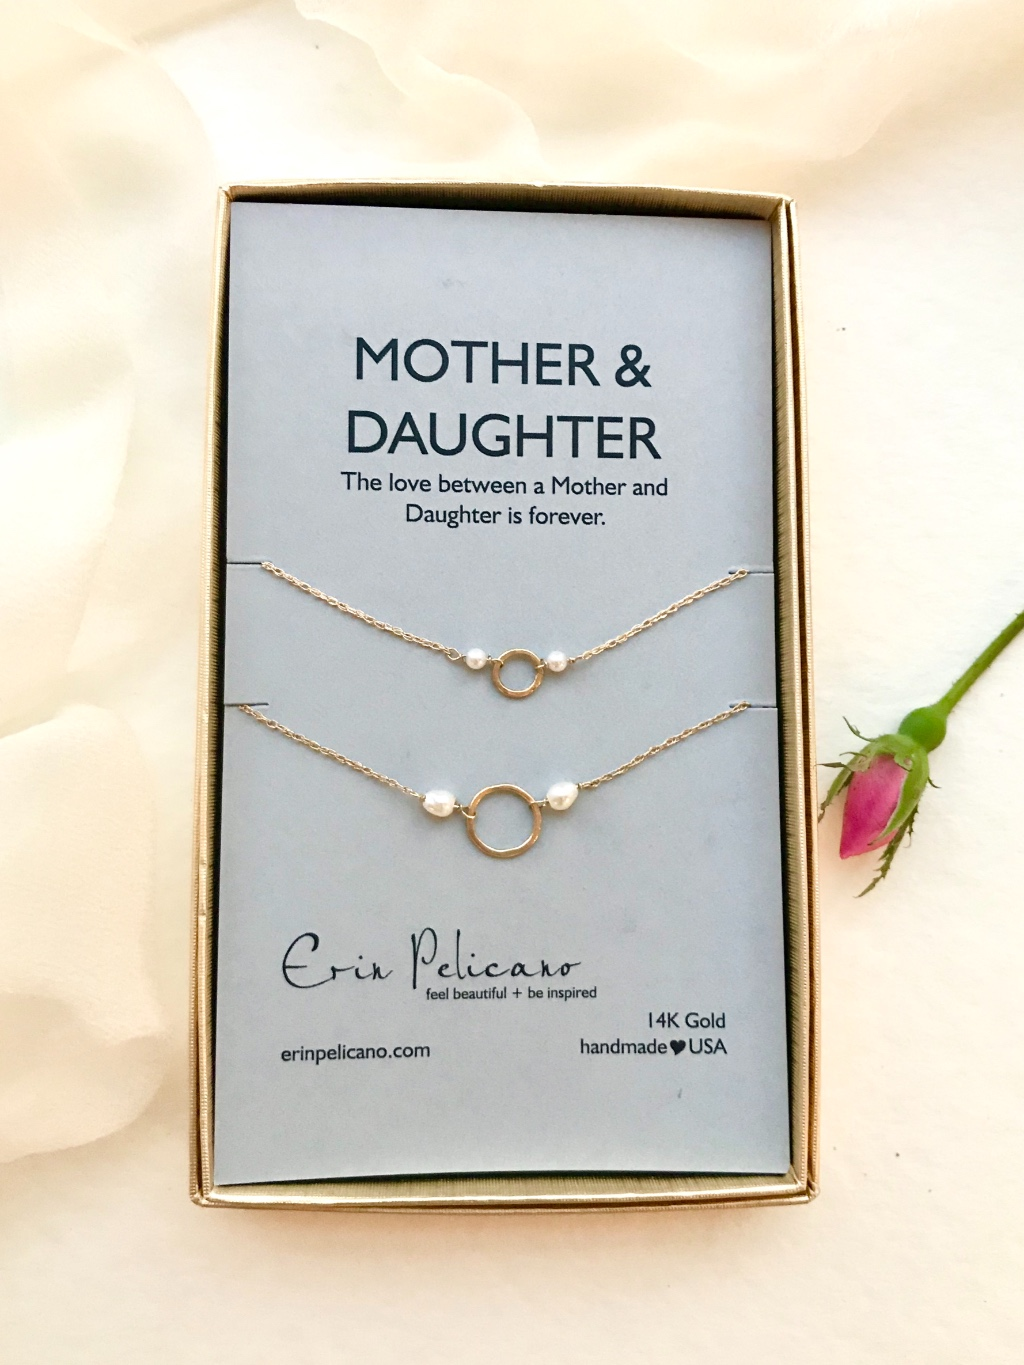 Mother Daughter bridal jewelry in 14k gold and pearls